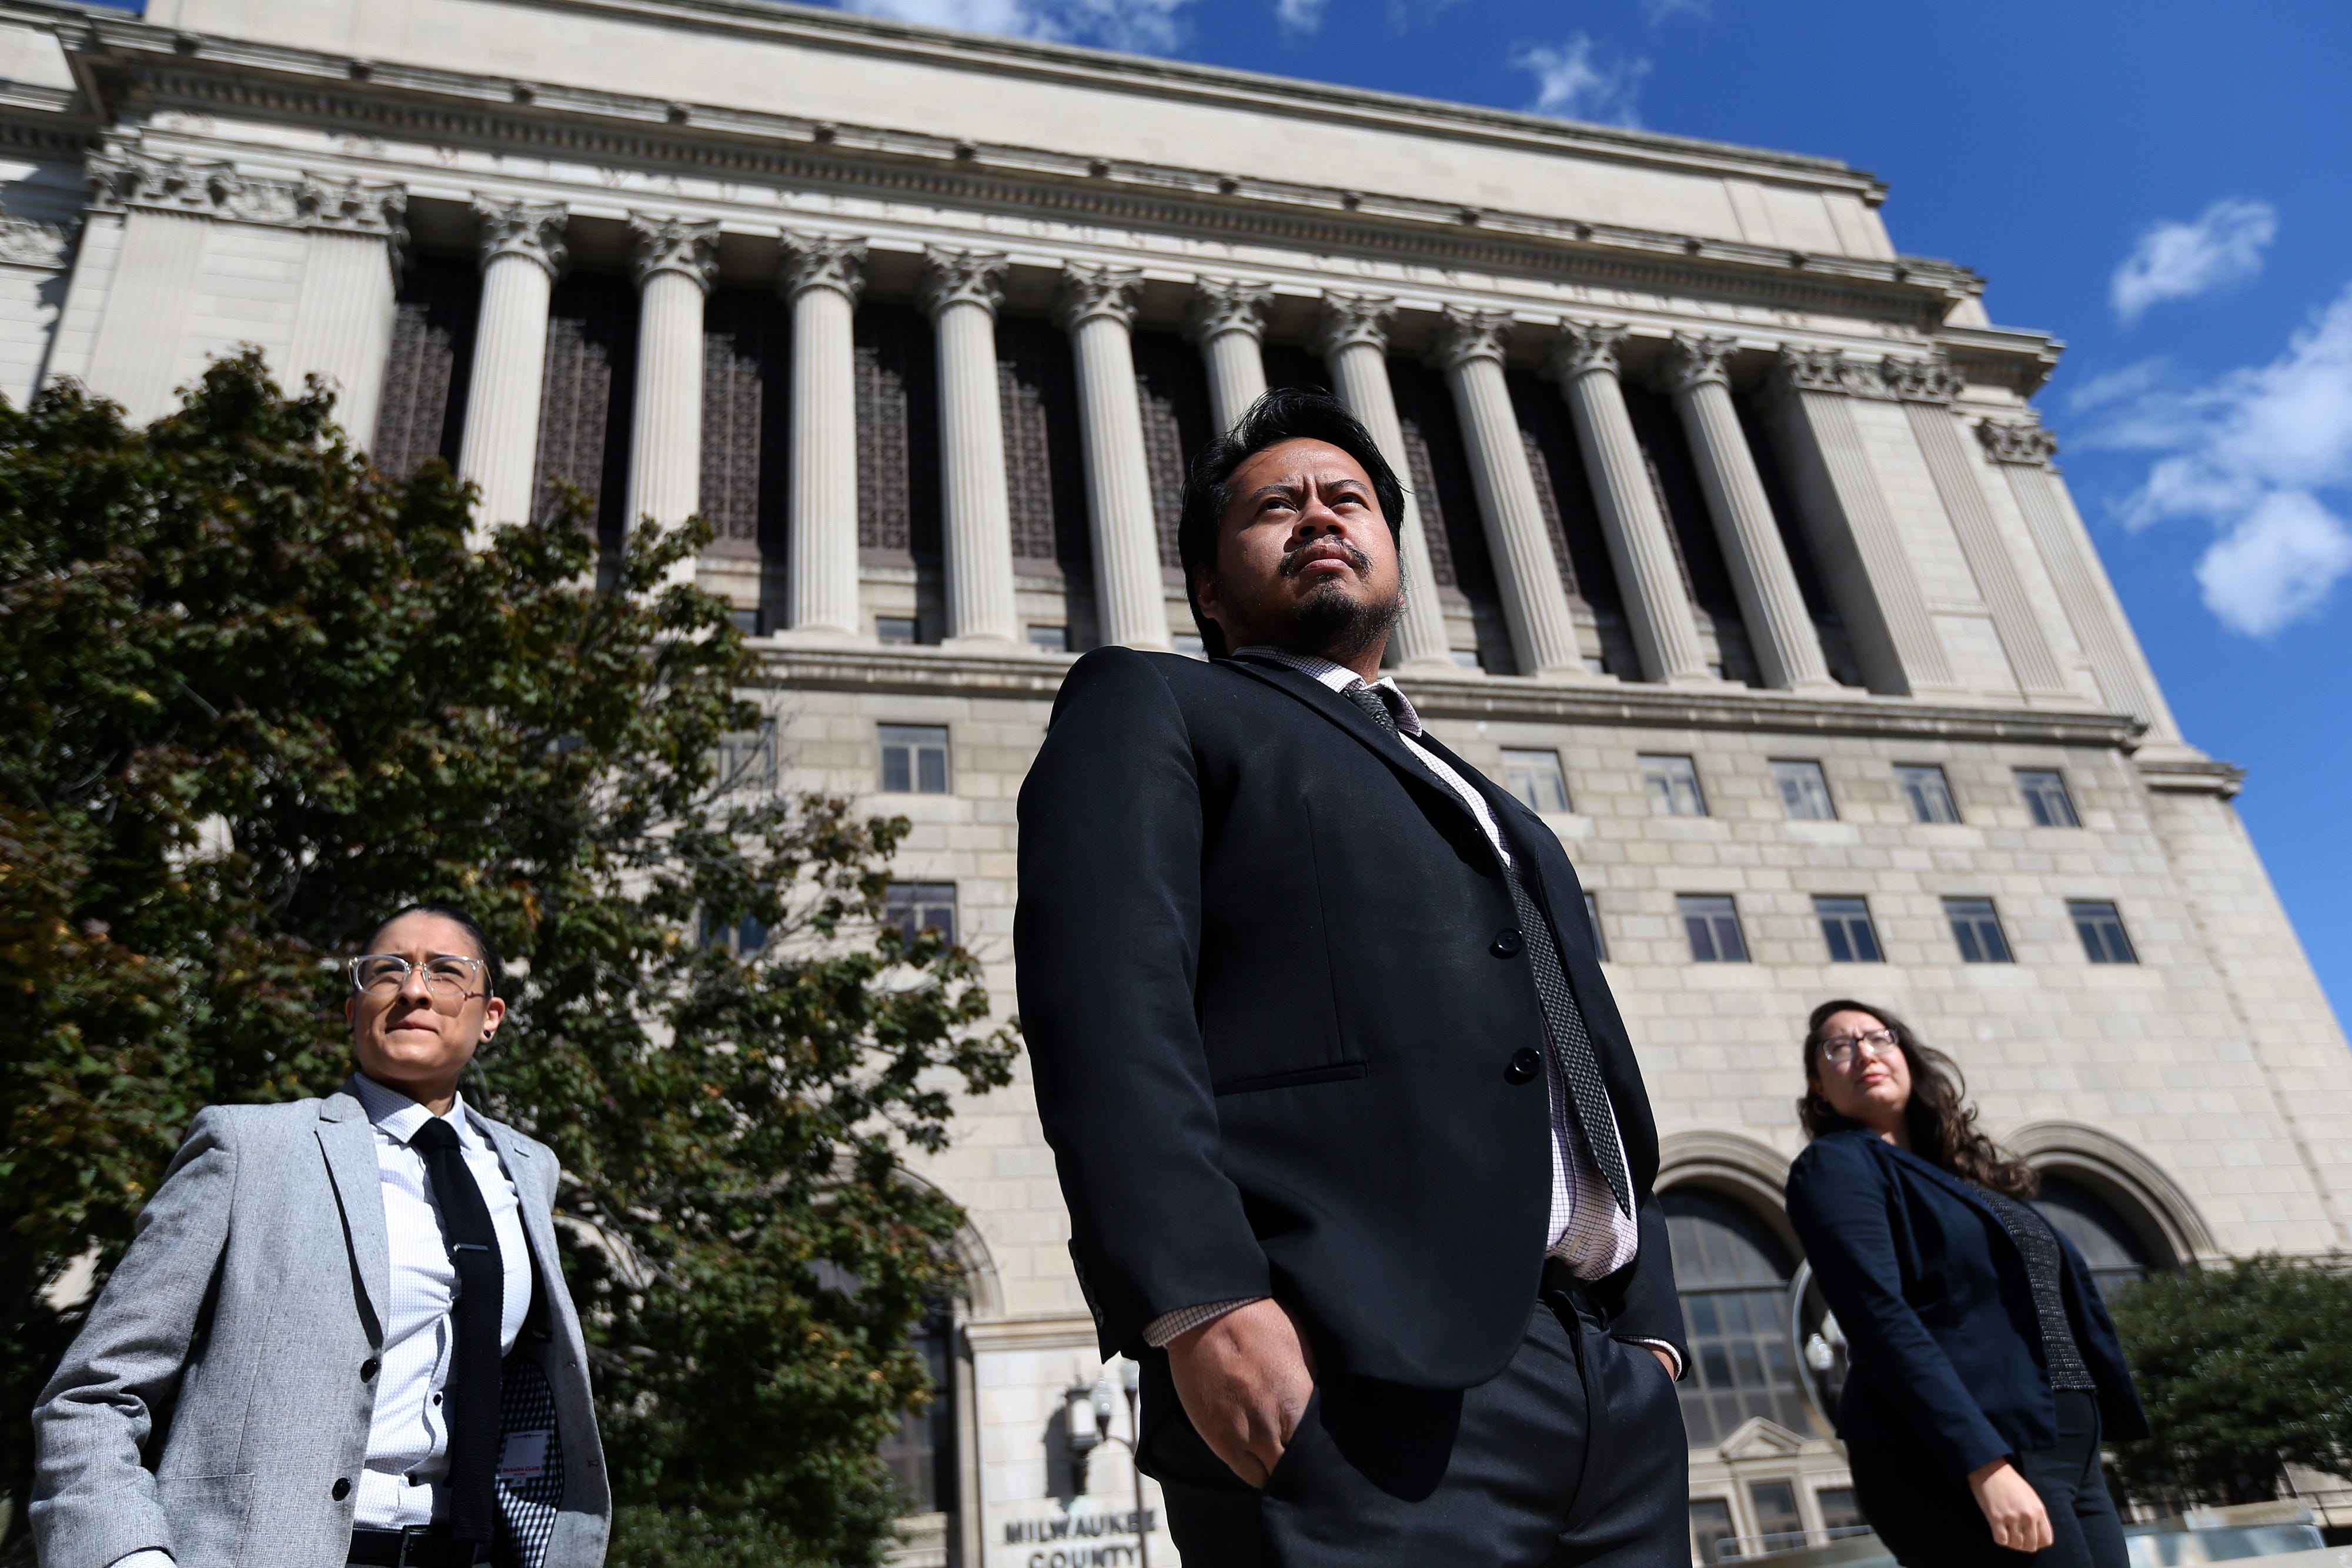 Staff from the Legal Action of Wisconsin Eviction Defense Project, from left, Jocelyn Gallegos, paralegal; Raphael Ramos, project director; and Sofia Ascorbe, assistant director and staff attorney, are photographed in front of the Milwaukee County Courthouse on Oct. 2, 2020.